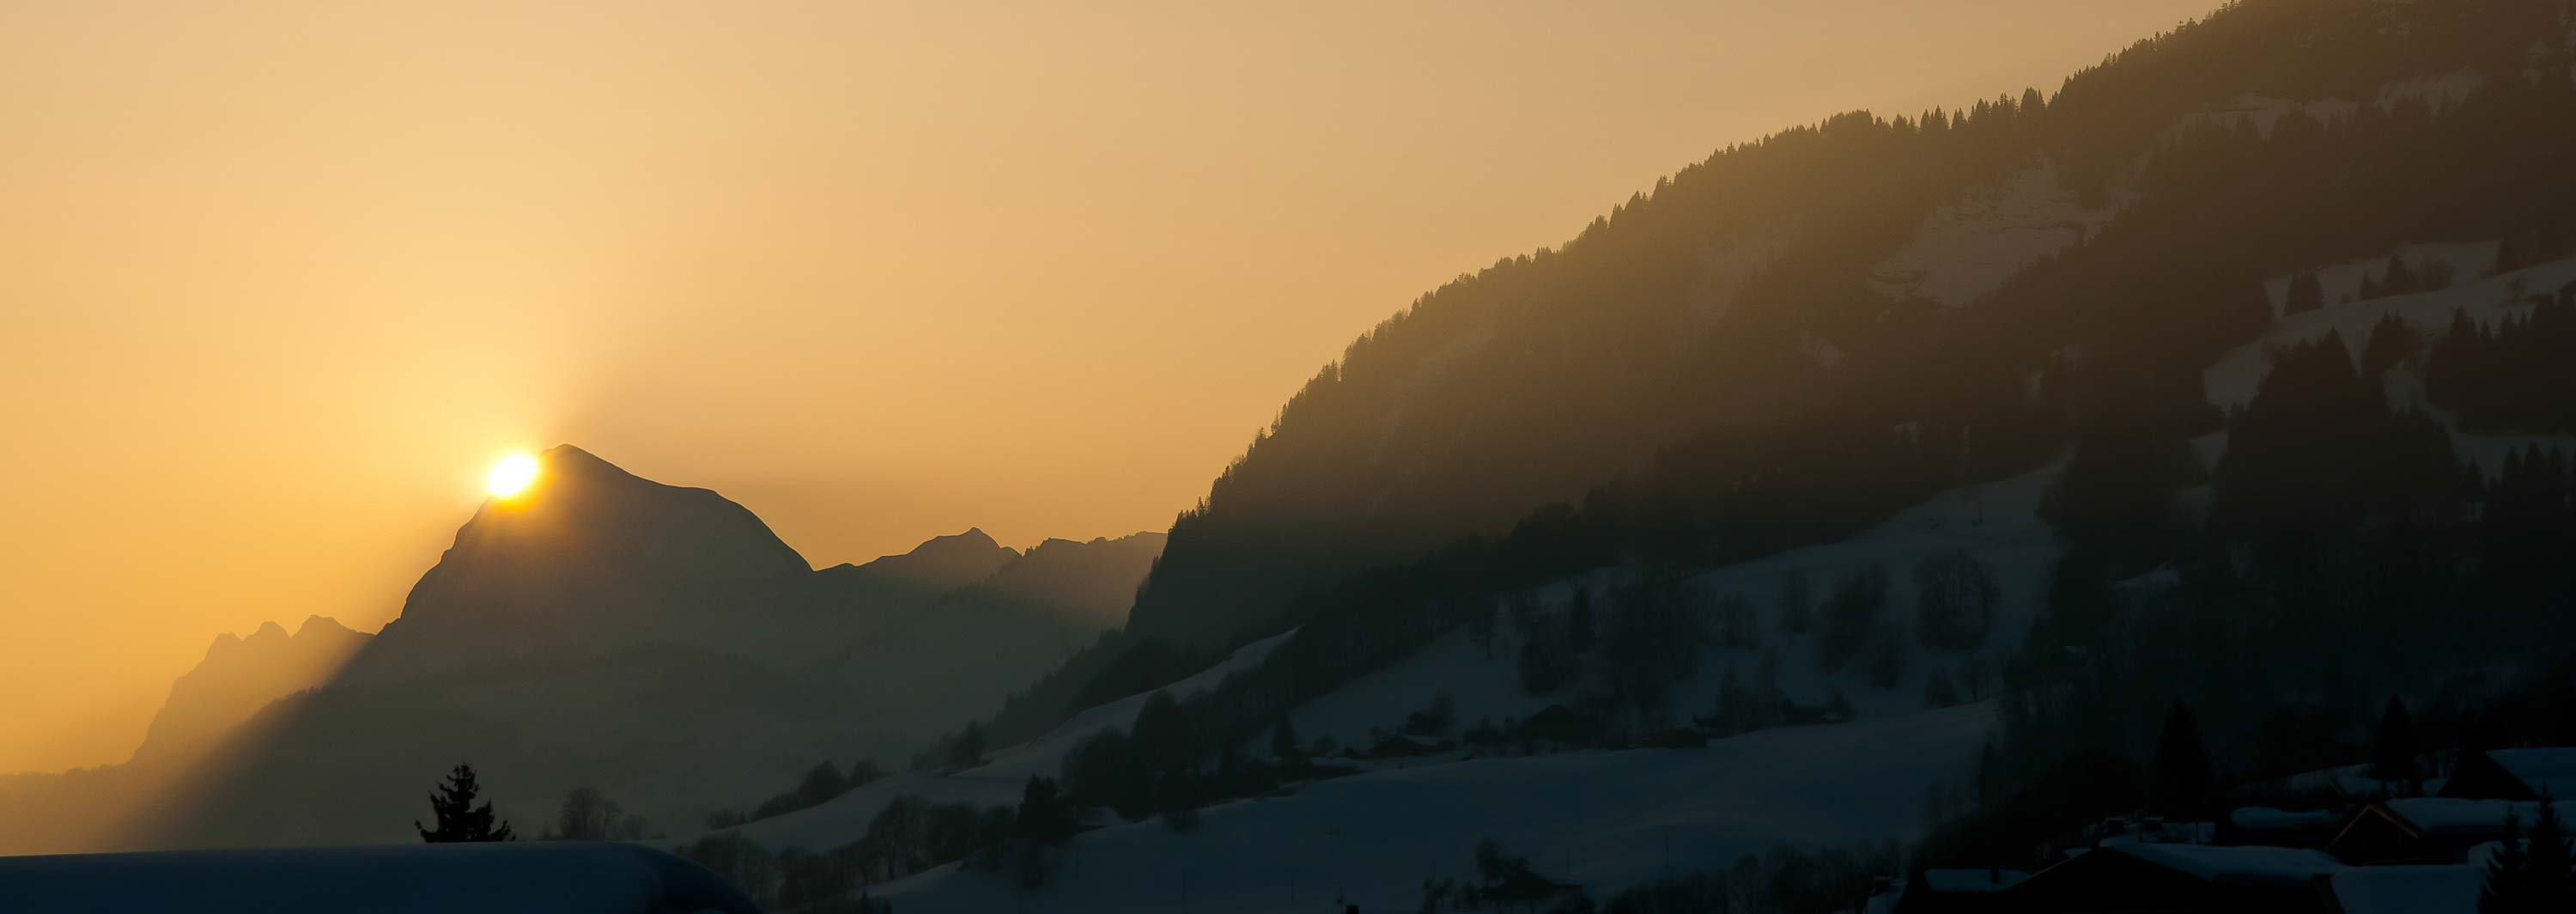 Sunrise-in-Savoie-by-Guillaume-Coche-Photography.jpg